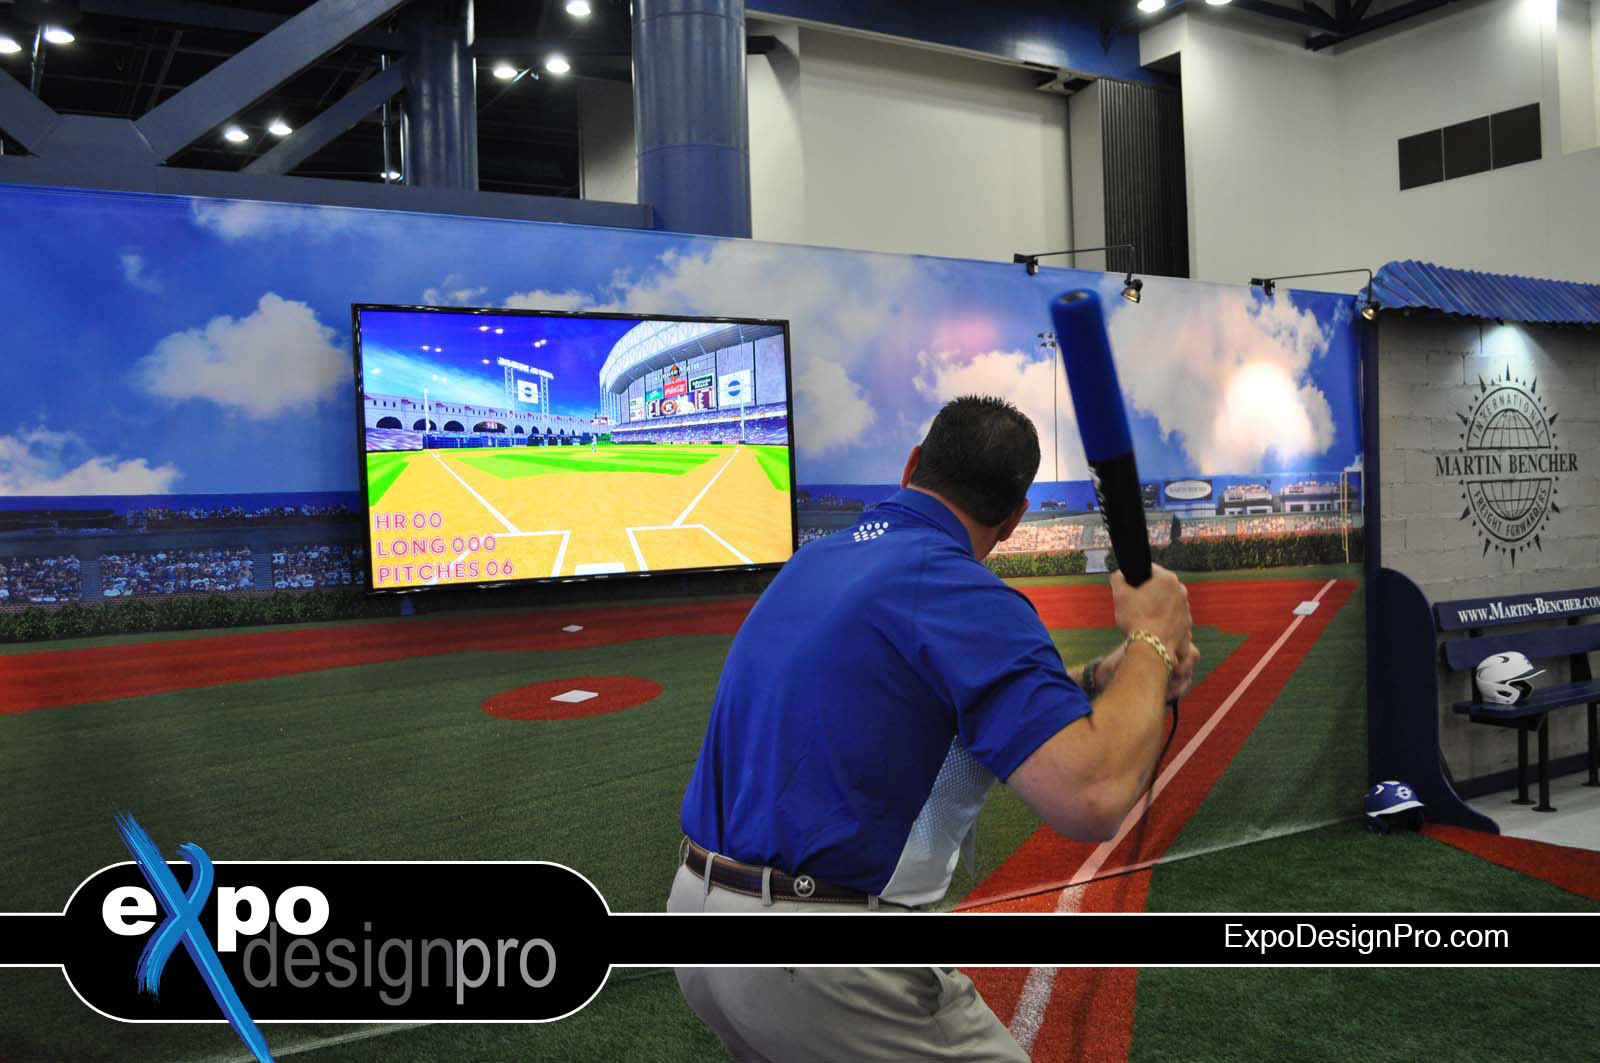 Do you need a baseball trade show design for your business? Call on Expo Design Pro to help you.